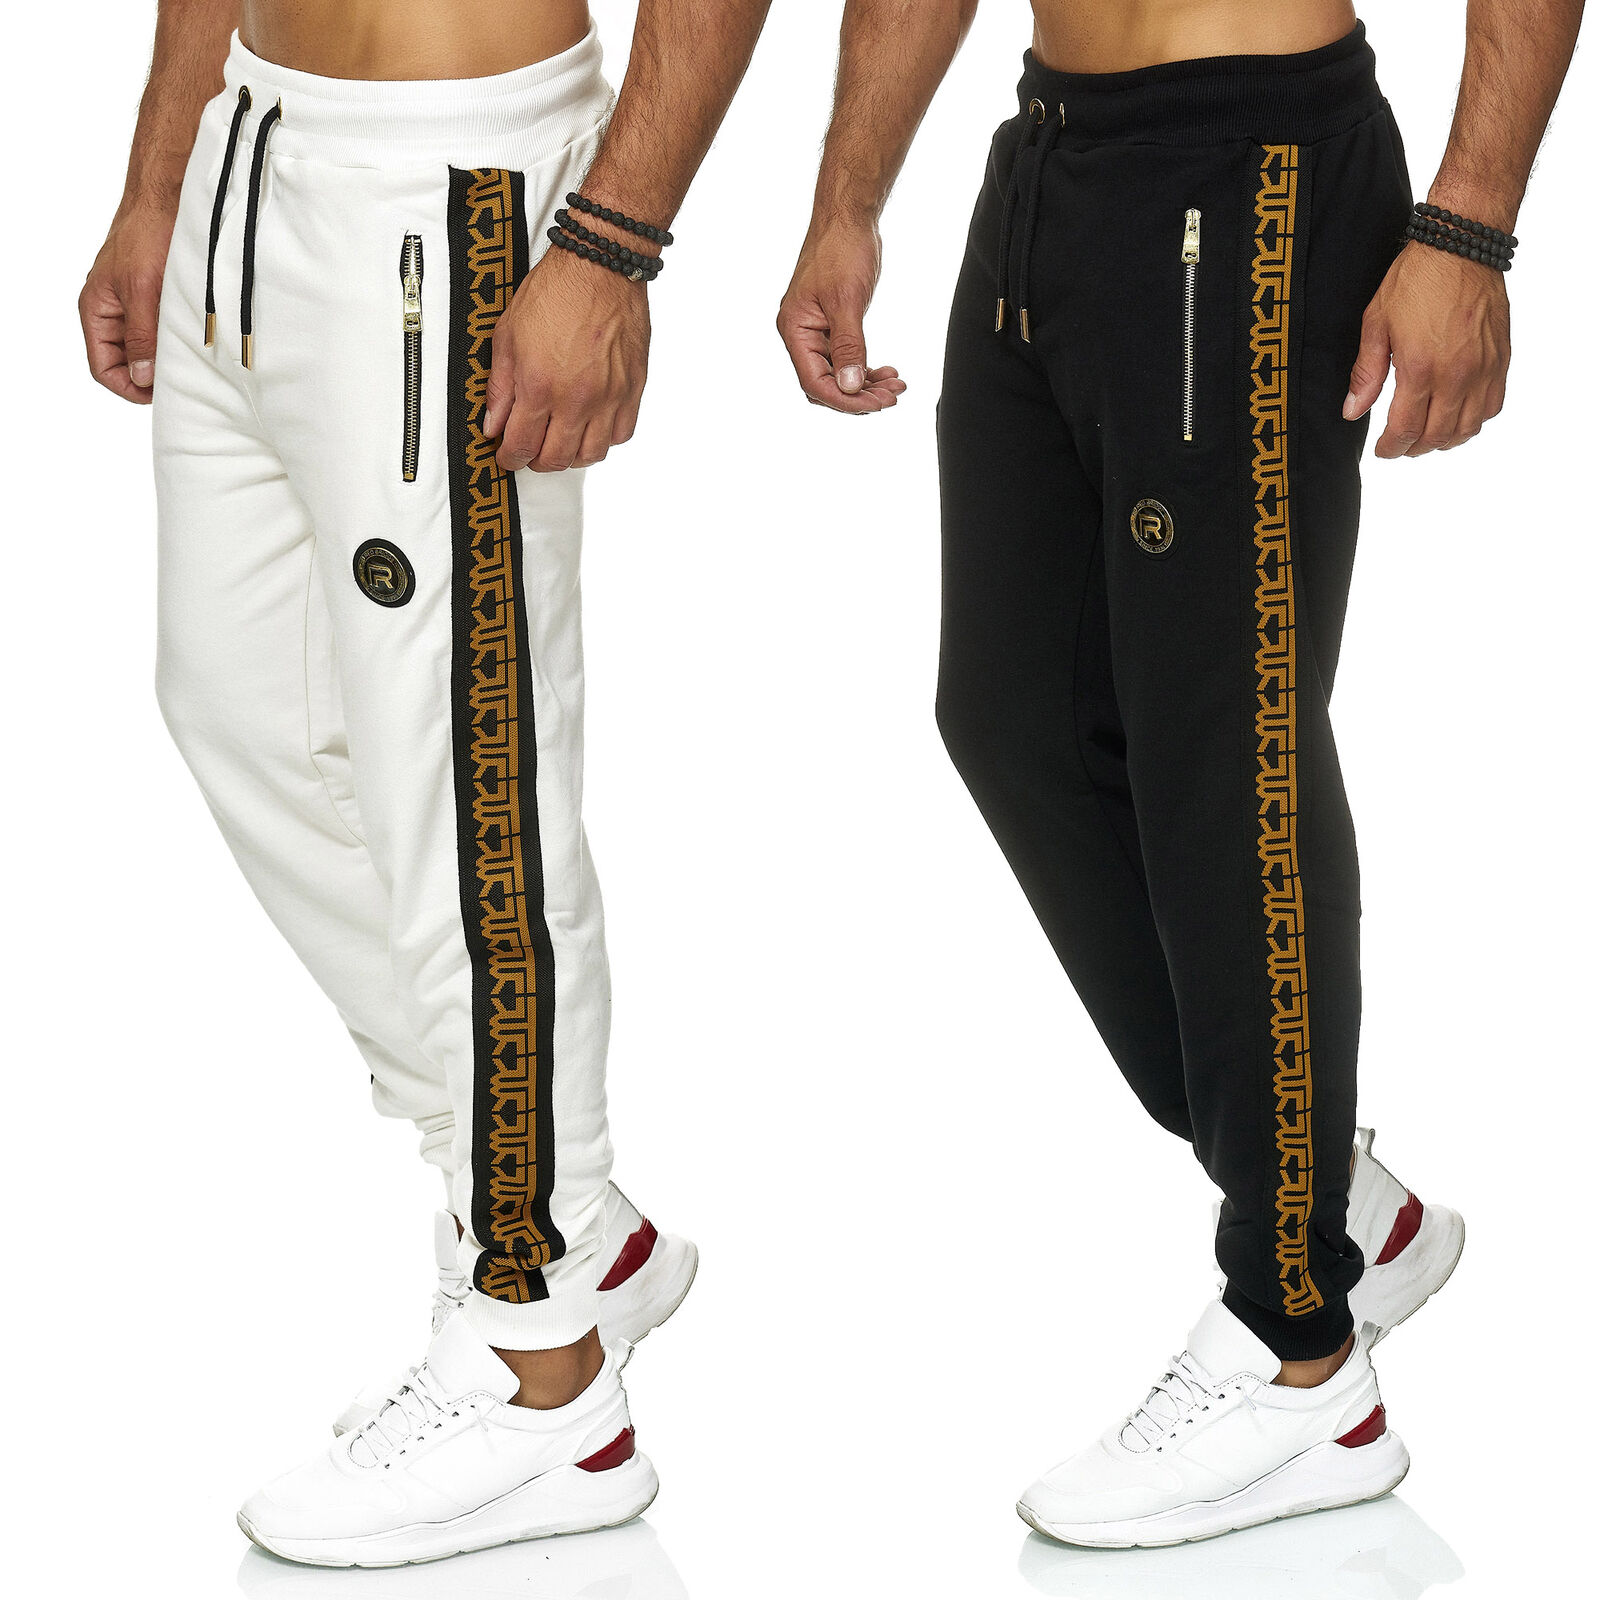 Tommy Hilfiger Herren Basic Embroidered Sweatpants Sporthose